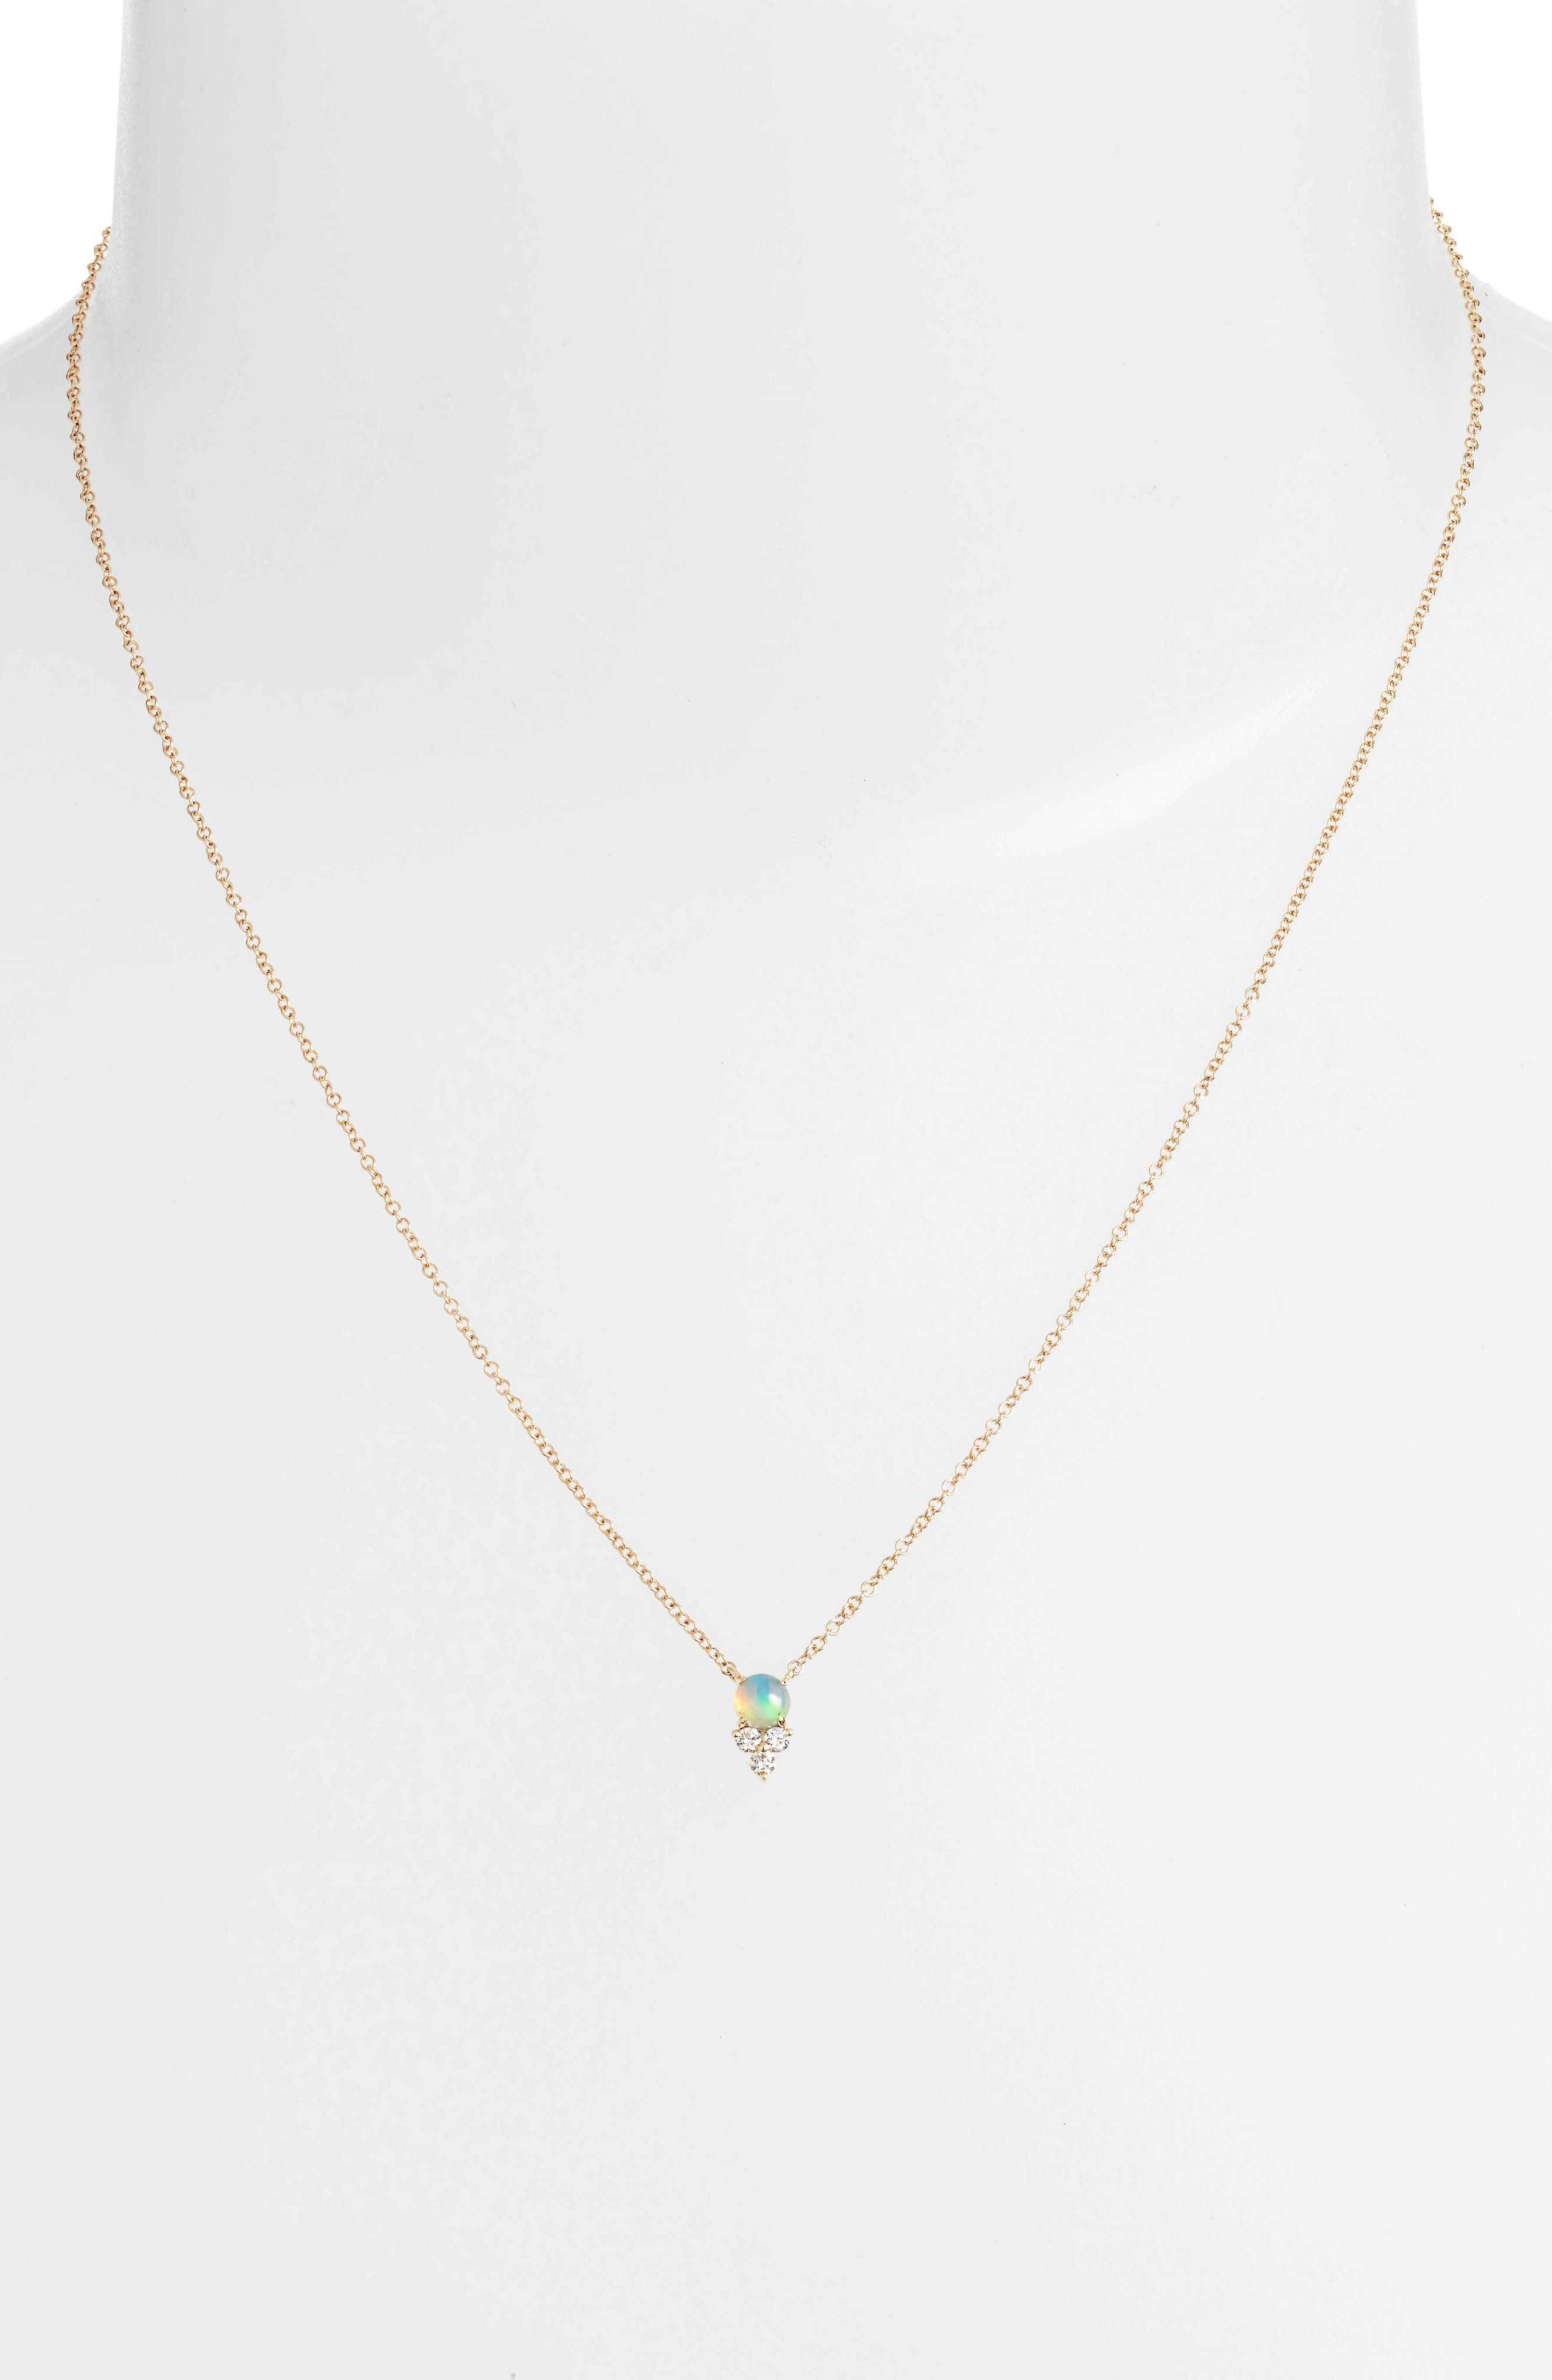 Diamond Trio Stone Pendant Necklace,                             Alternate thumbnail 2, color,                             YELLOW GOLD/ OPAL